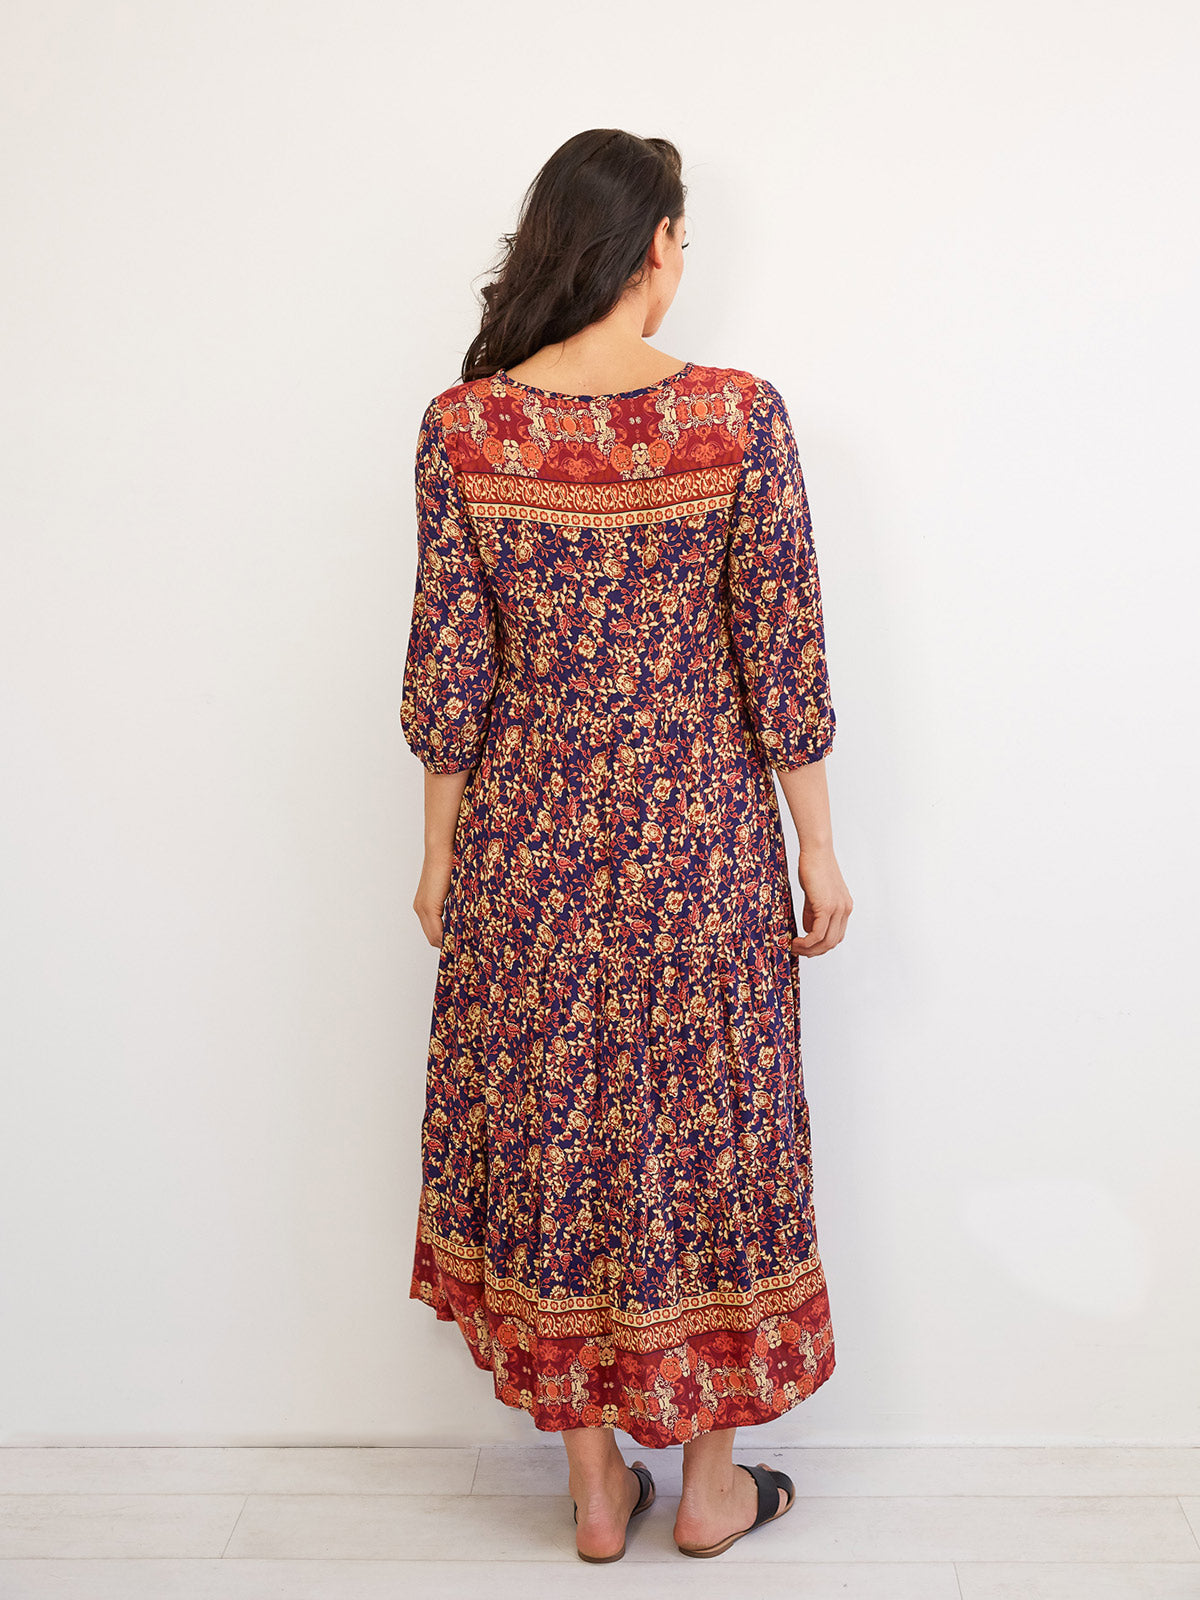 HACIENDA DREAMING FLORAL DRESS